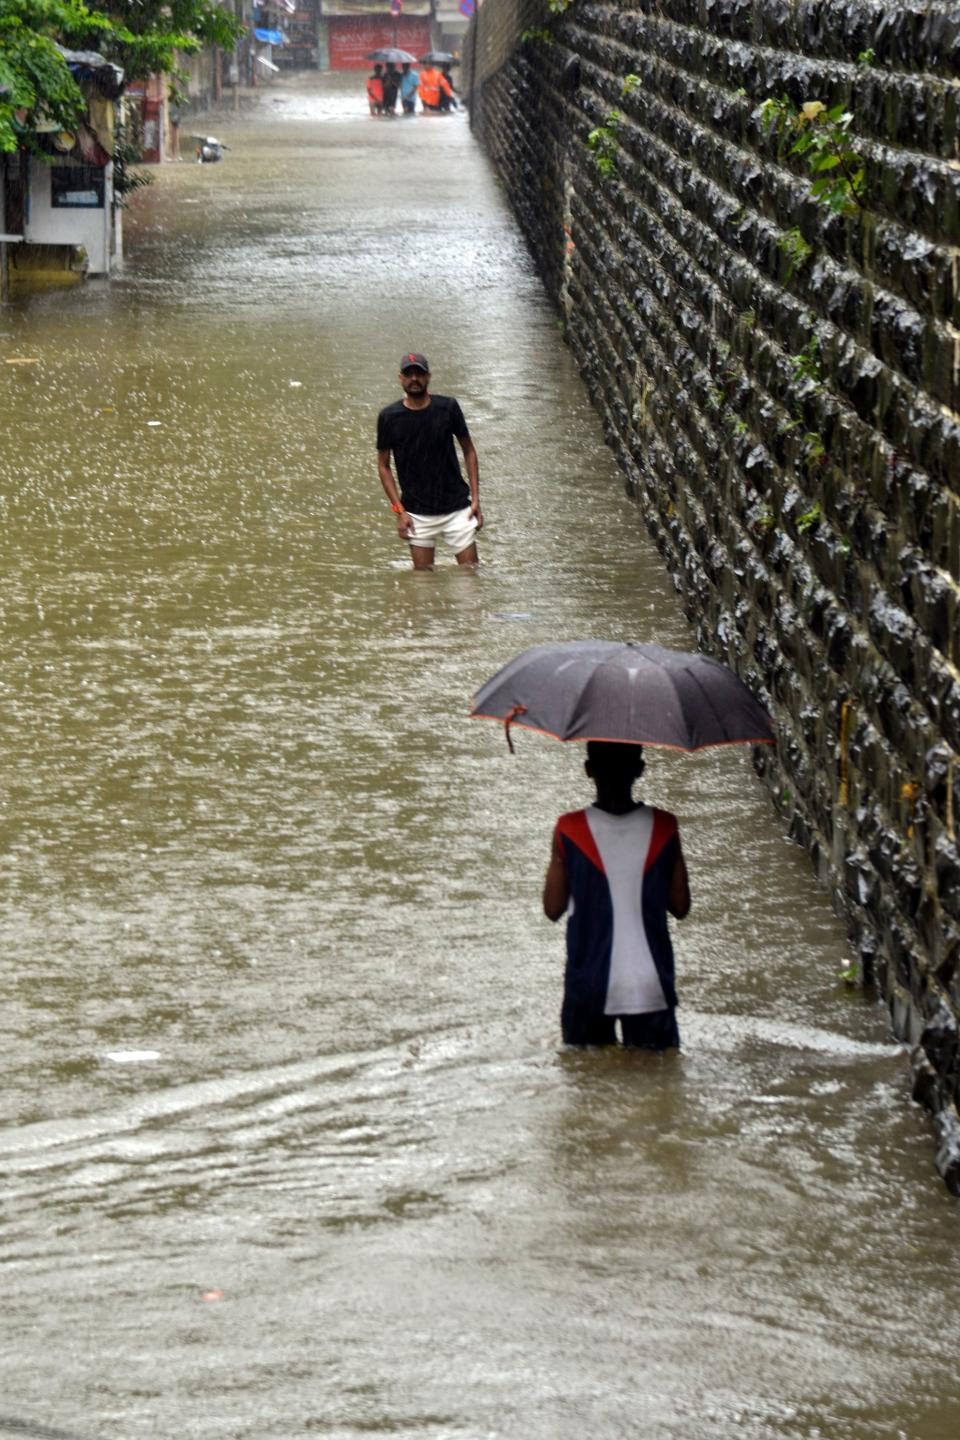 People wade along a flooded road during a heavy monsoon rainfall in Mumbai on August 4, 2020. (Photo by Sujit Jaiswal / AFP) (Photo by SUJIT JAISWAL/AFP via Getty Images)